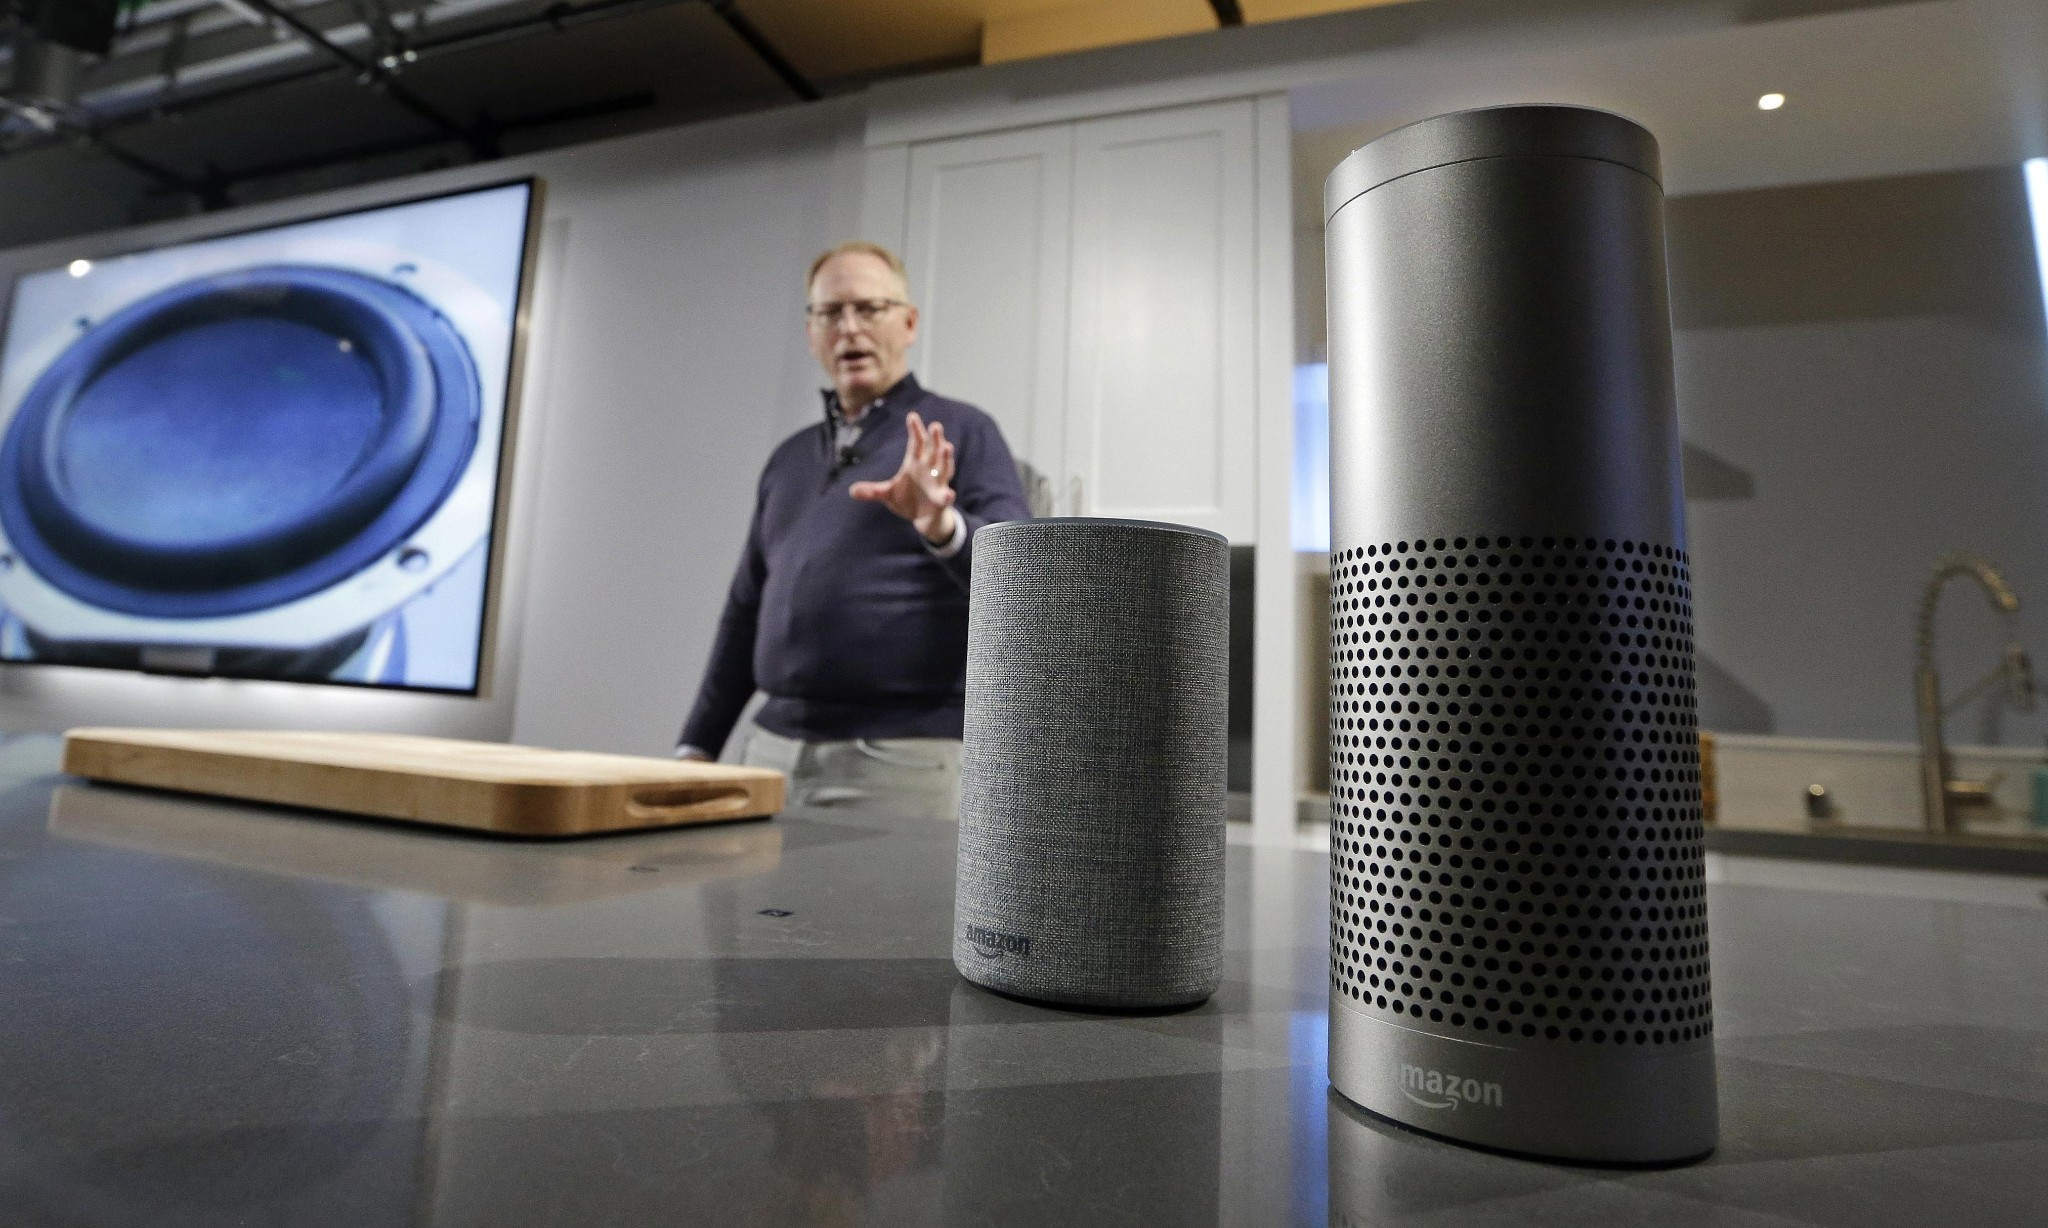 Amazon's latest Alexa devices ready to extend company's reach into your home